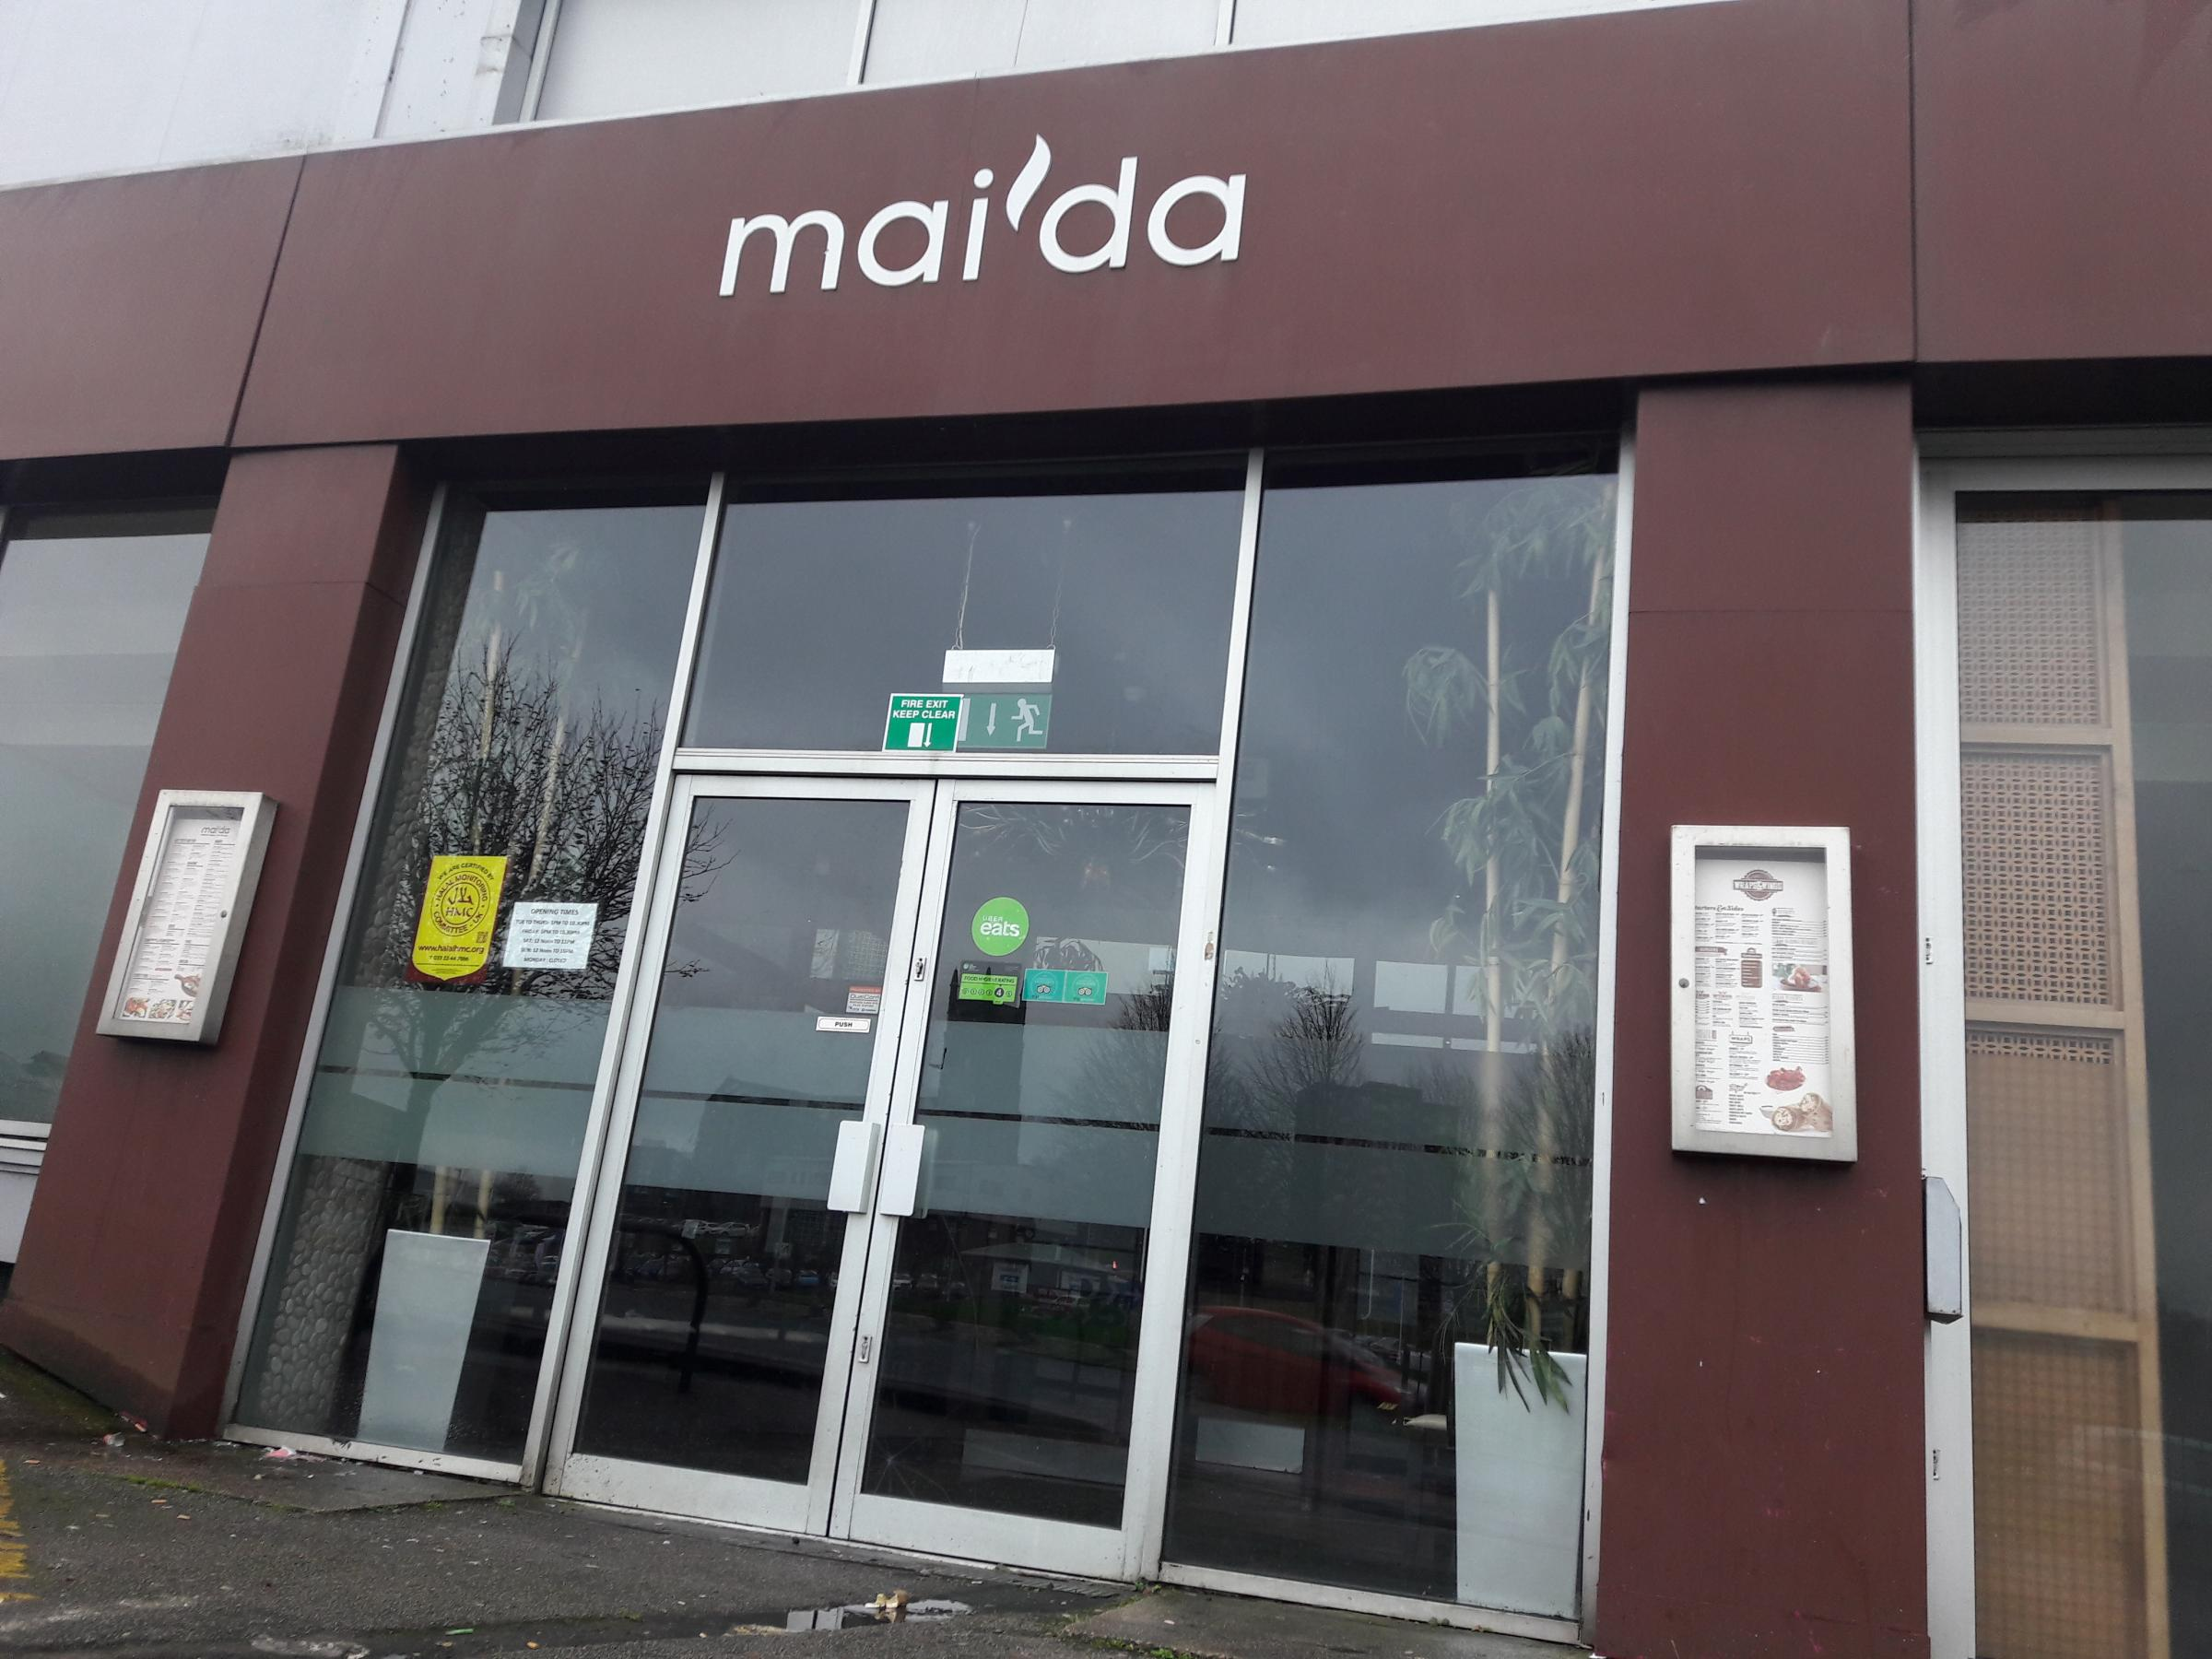 Maida Blackburn restaurant to convert to banqueting hall only